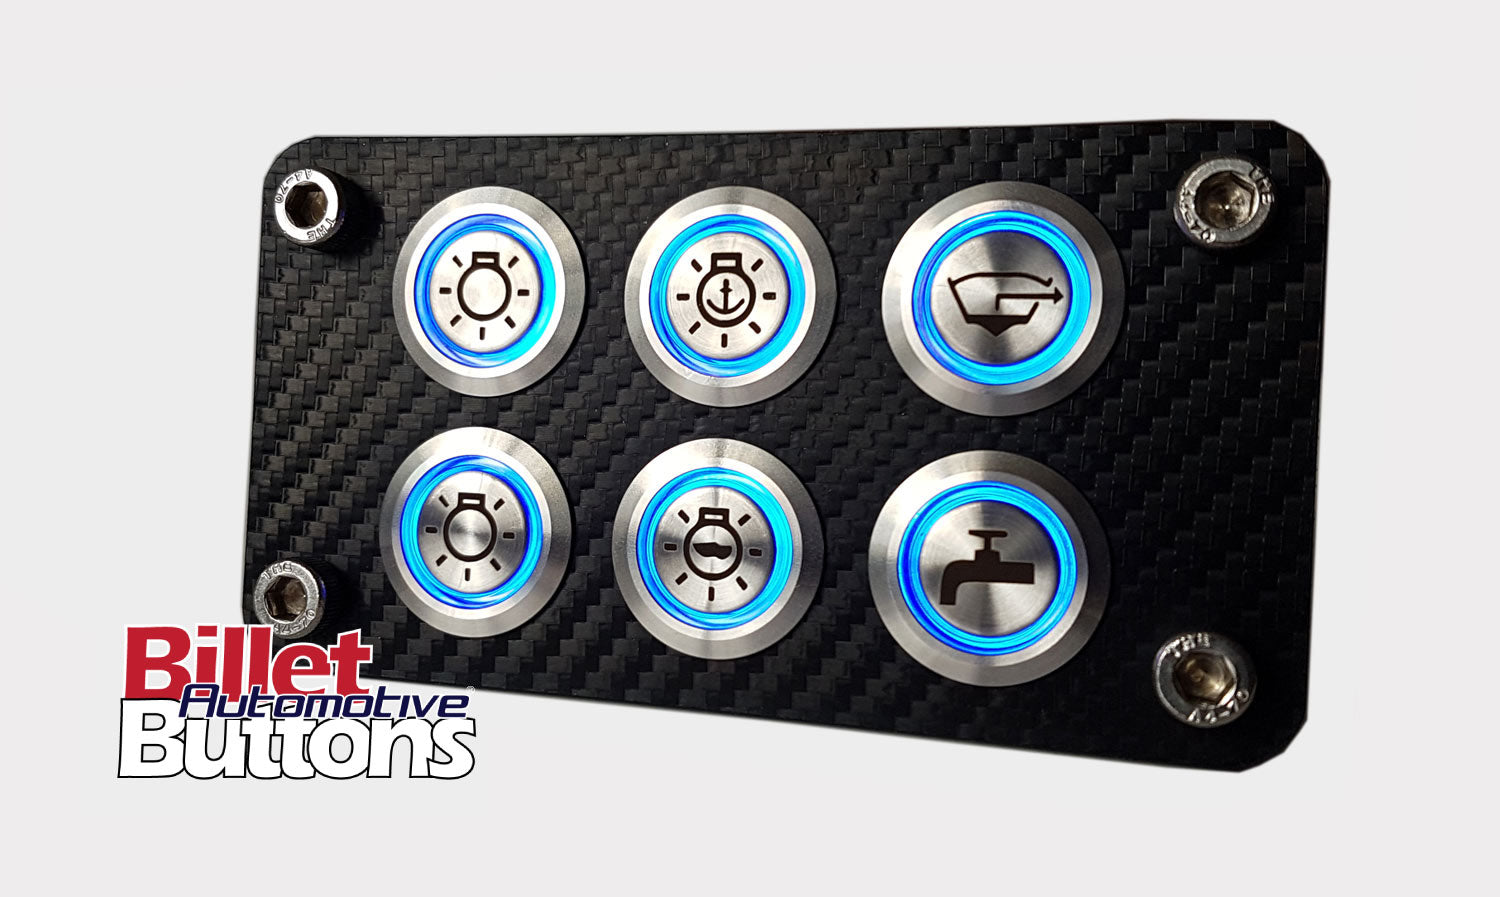 Billet Automotive Buttons Design Your Own Custom Panel Mounted Push On Hazard Switch Water Resistant